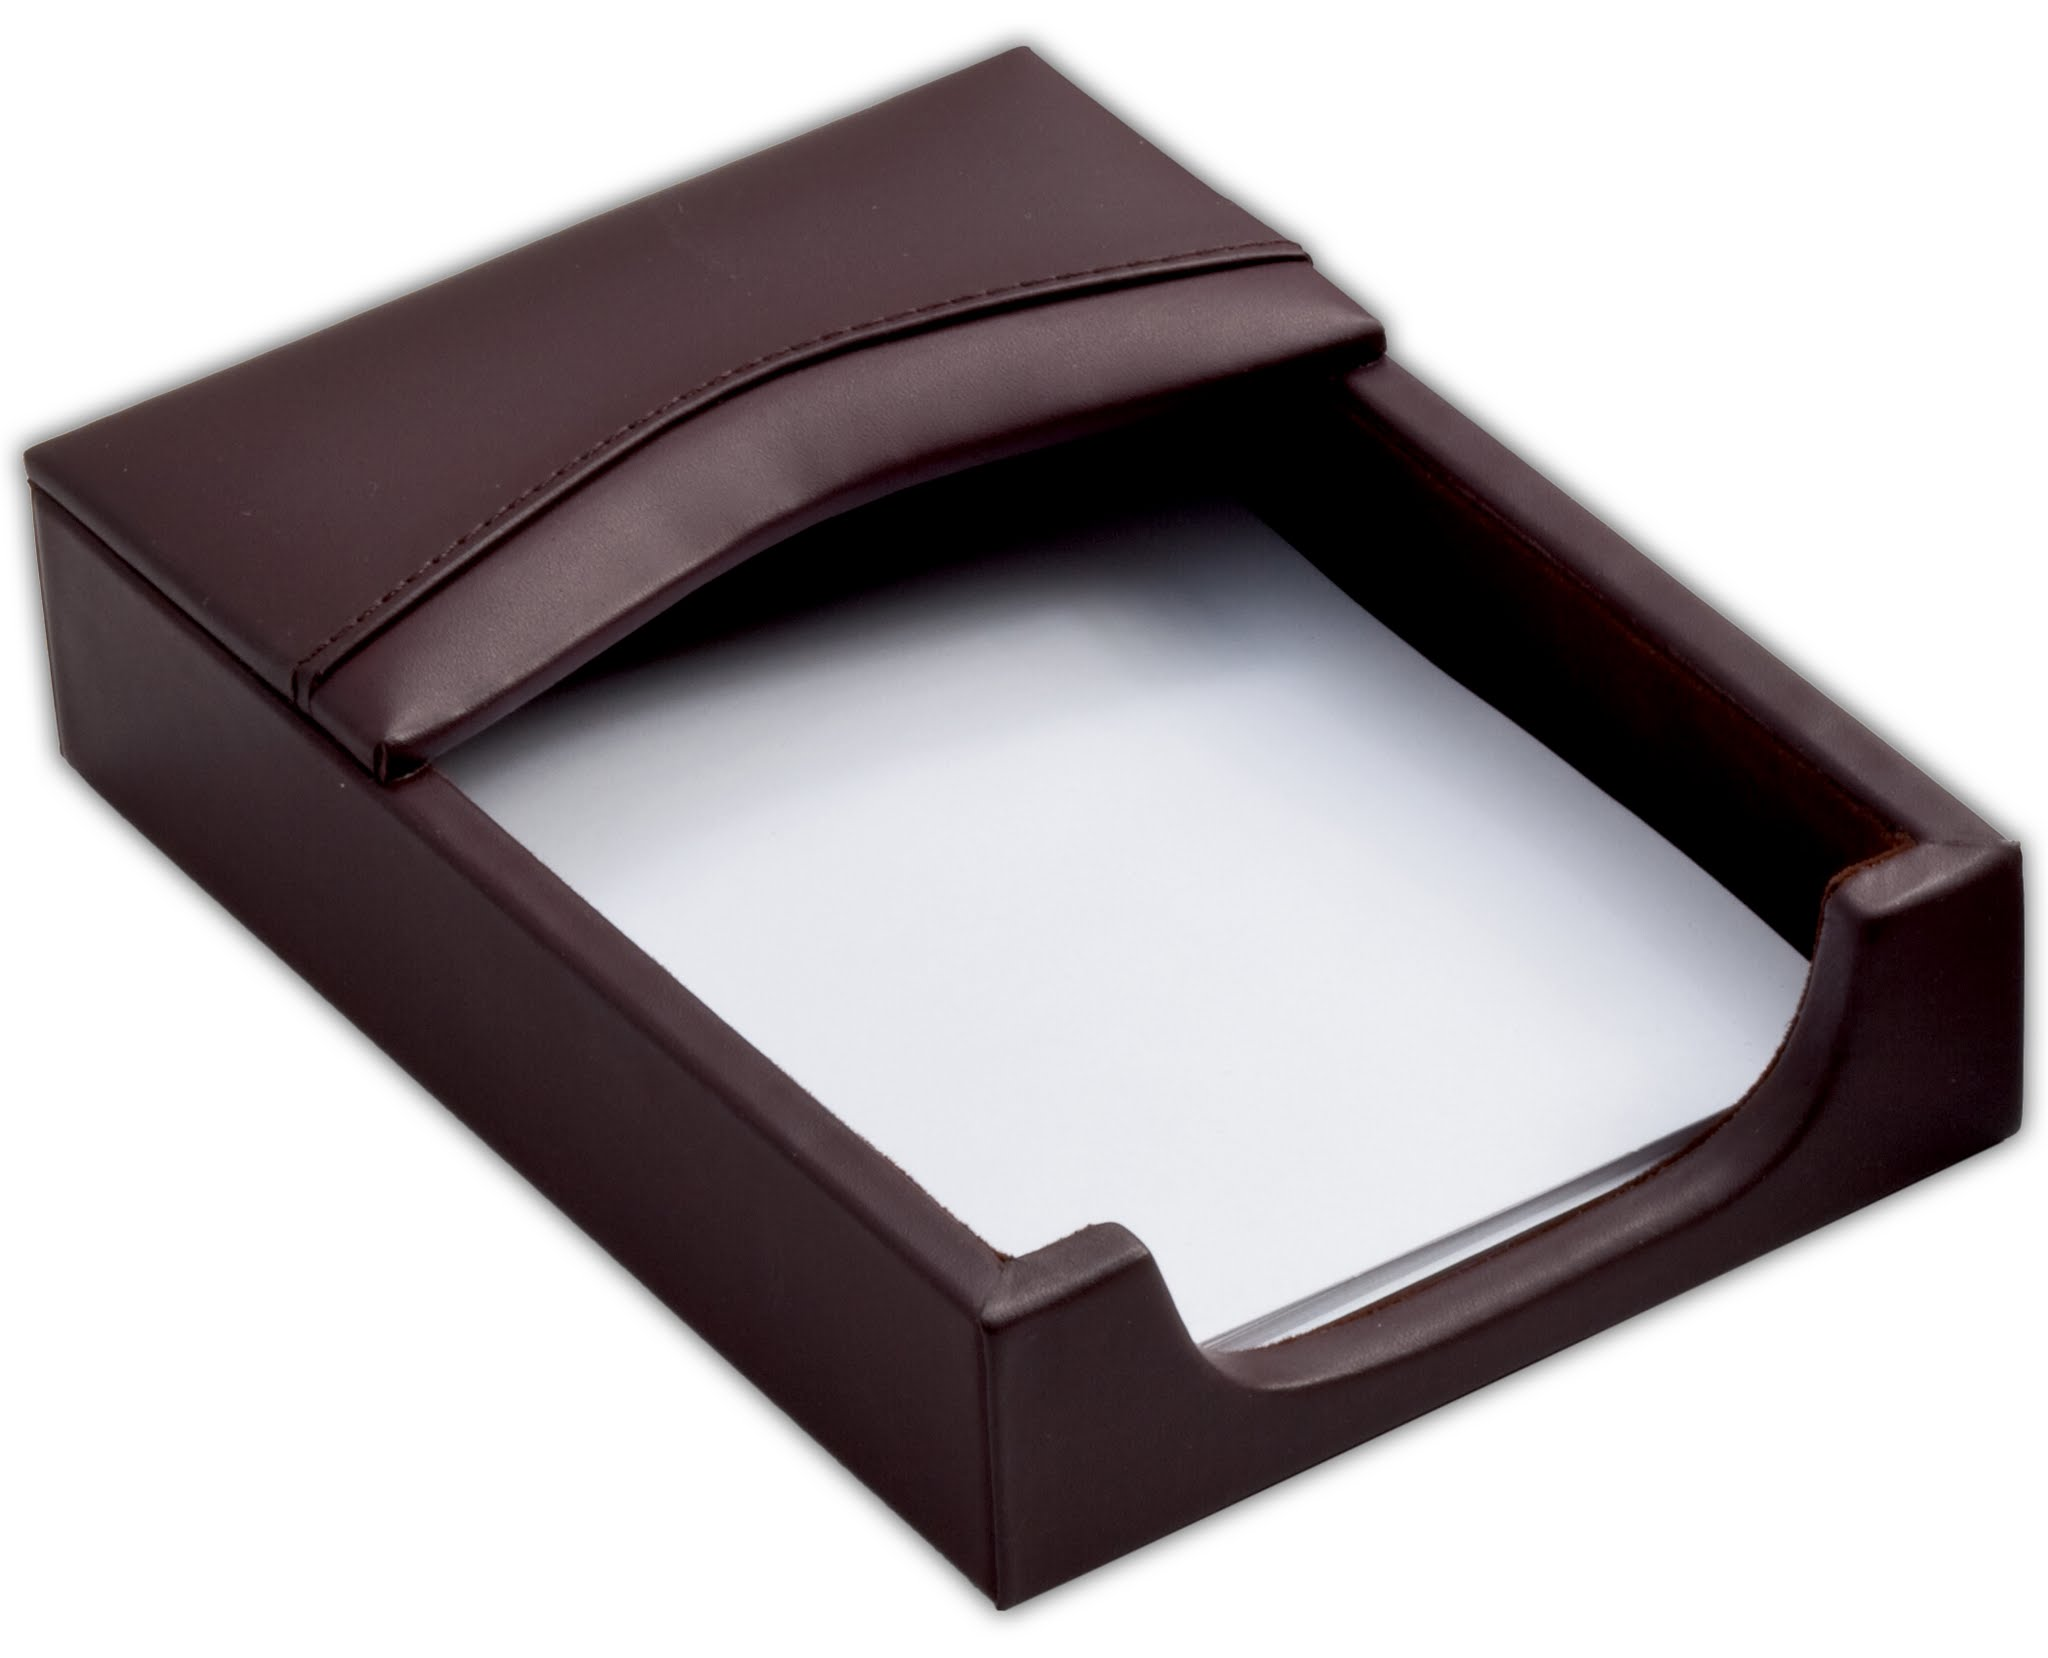 Chocolate Brown Leather 4 x 6 Memo Holder by Dacasso